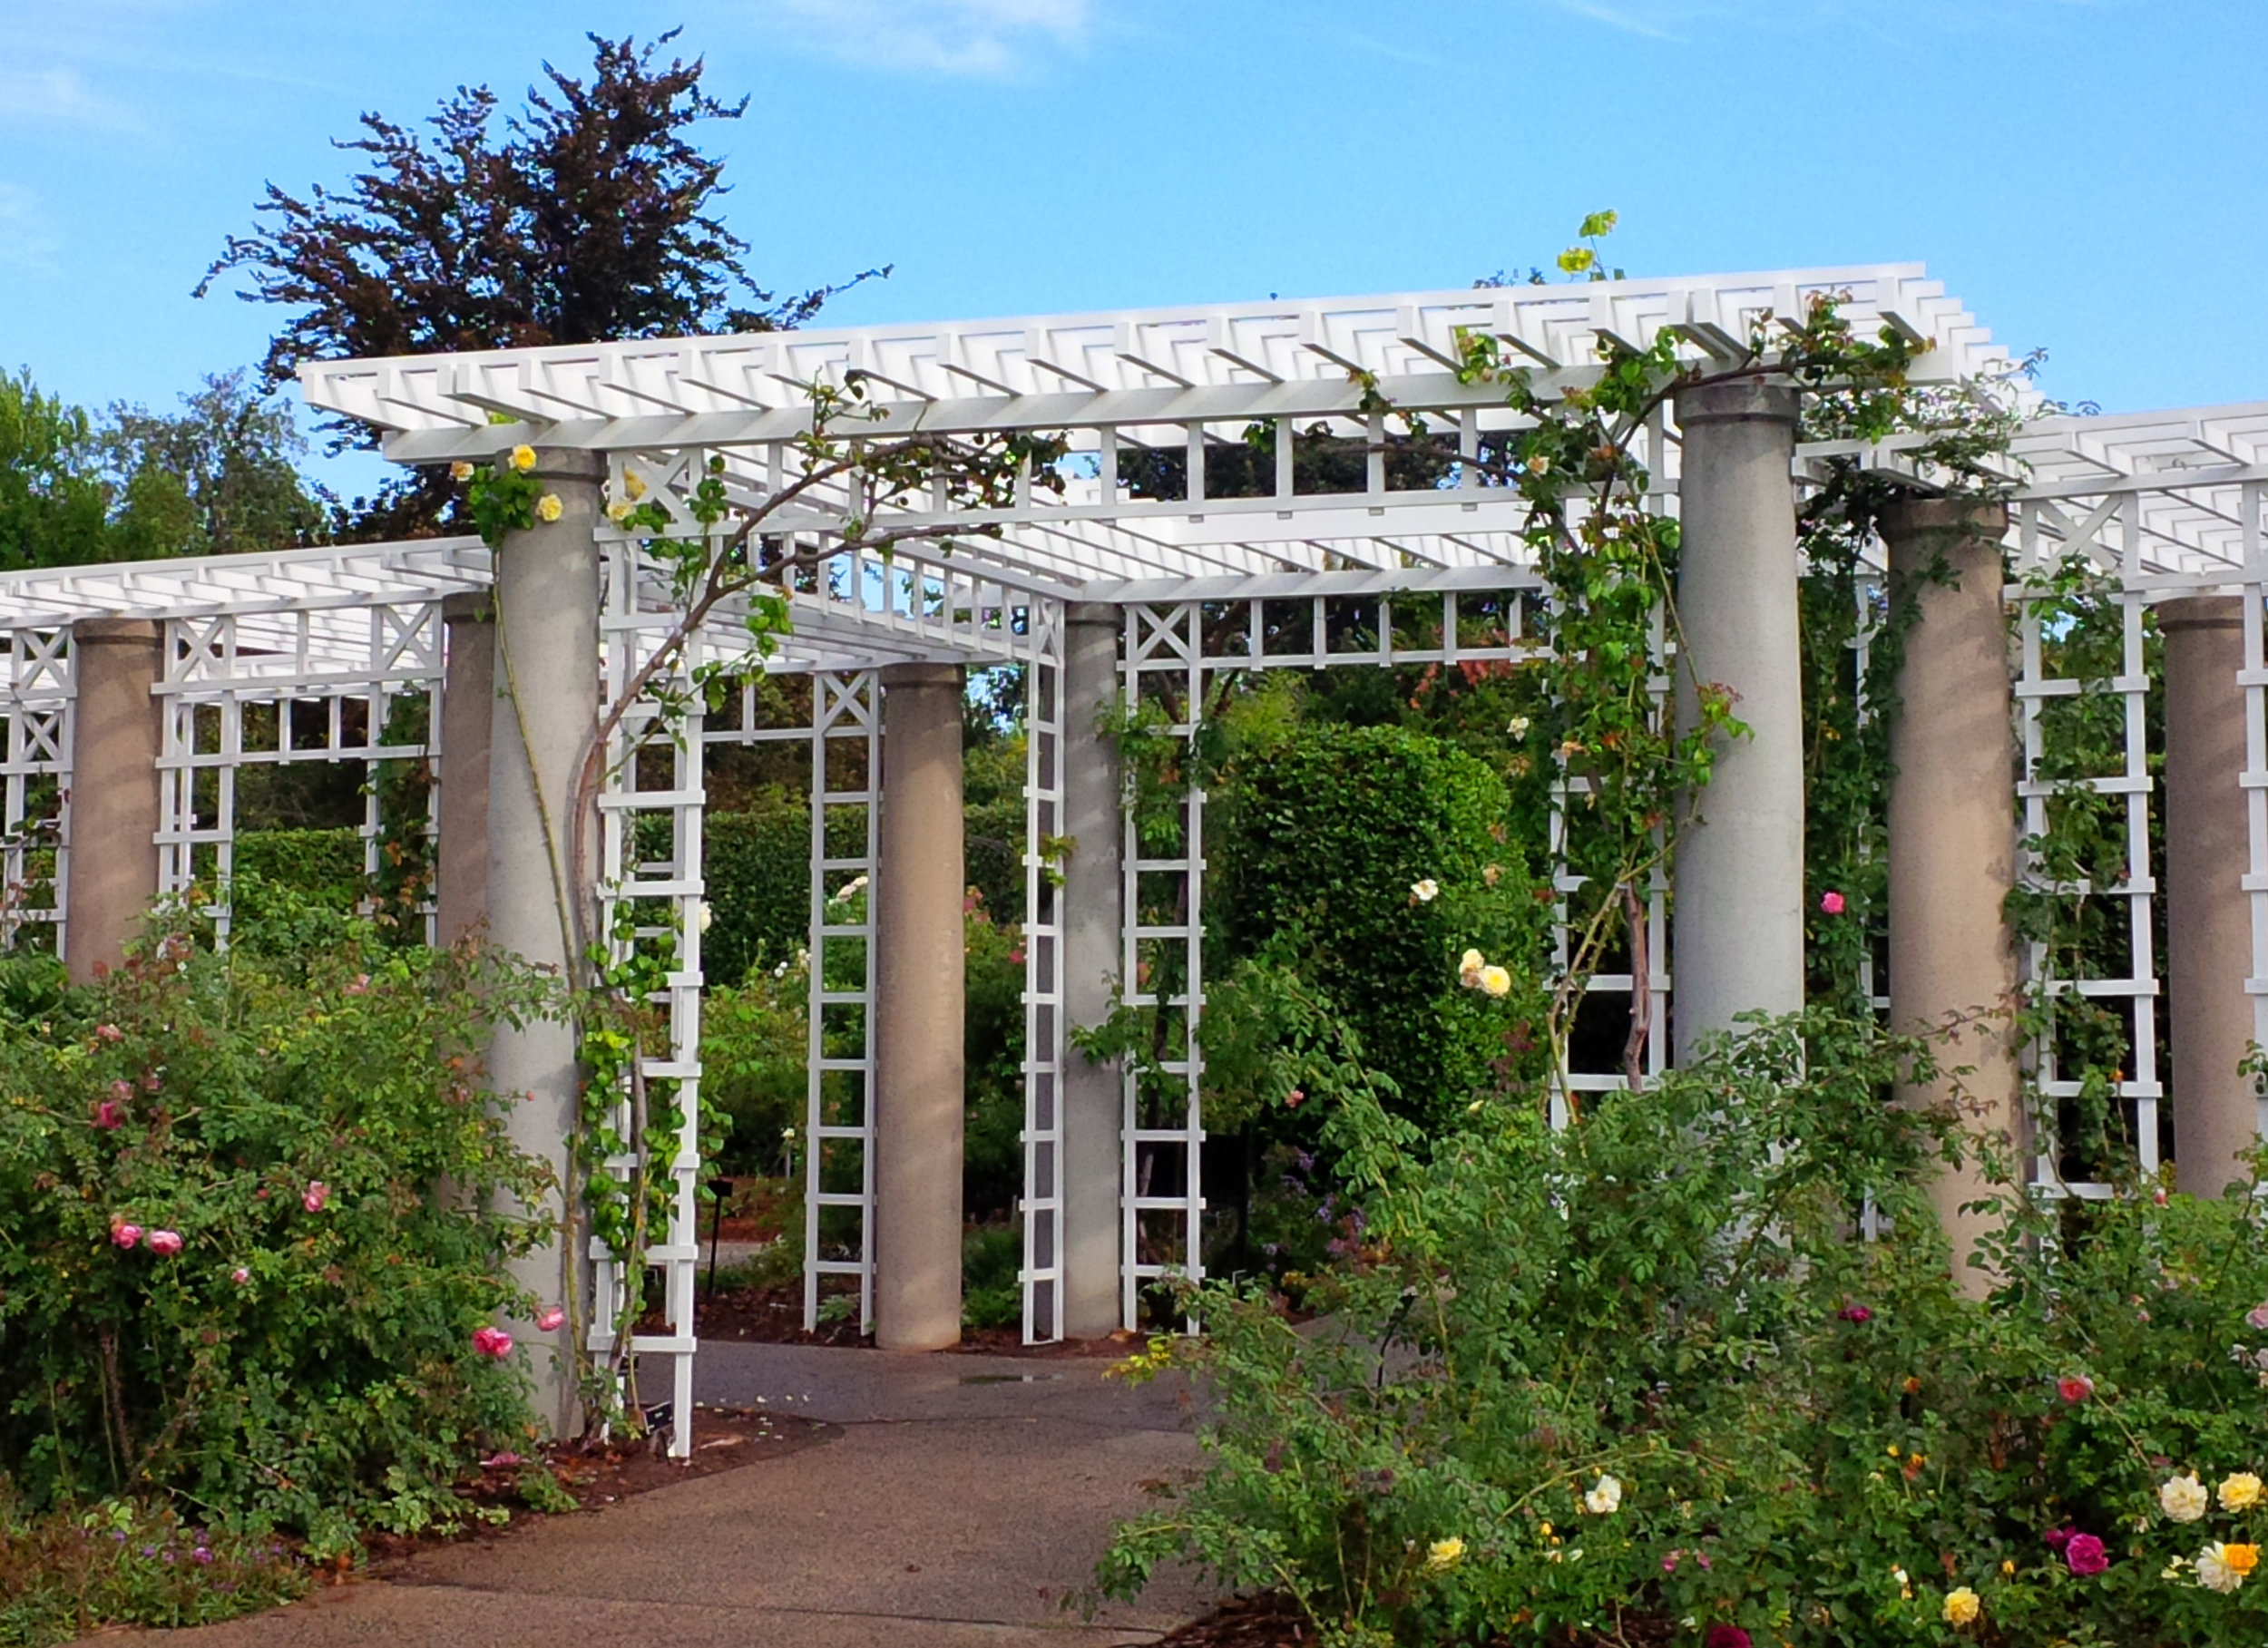 - The crossing area of the re-constructed trellis